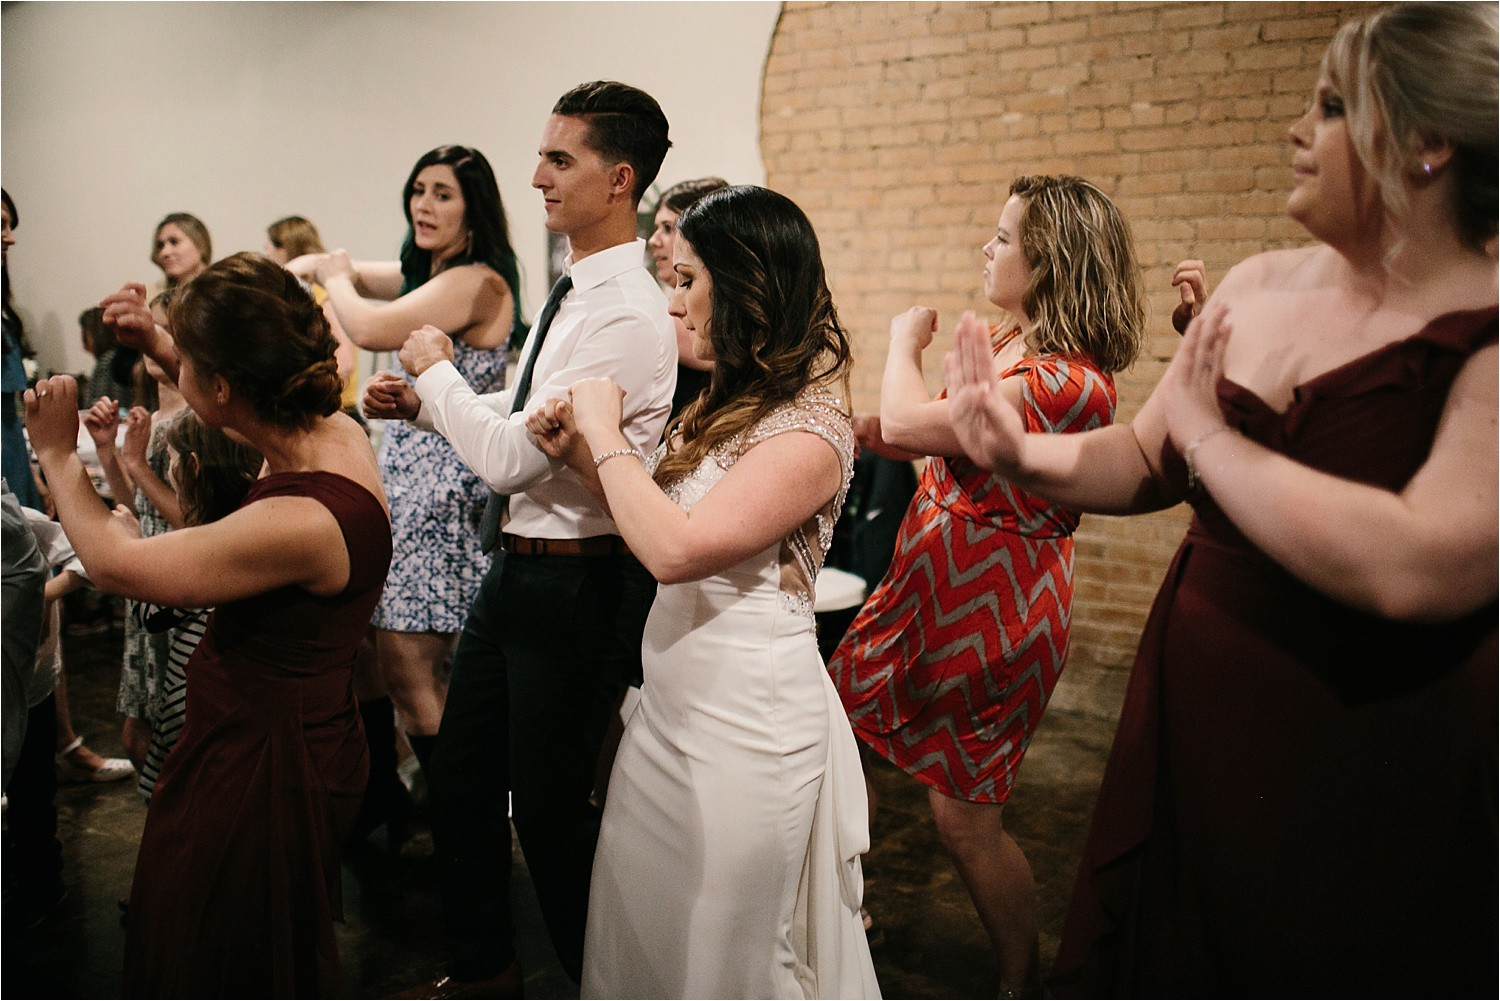 whittney-drew-__-an-intimate-wine-and-navy-wedding-in-an-industrial-venue-at-loft-123-in-paris-tx-by-north-texas-wedding-photographer-rachel-meagan-photography-_-097